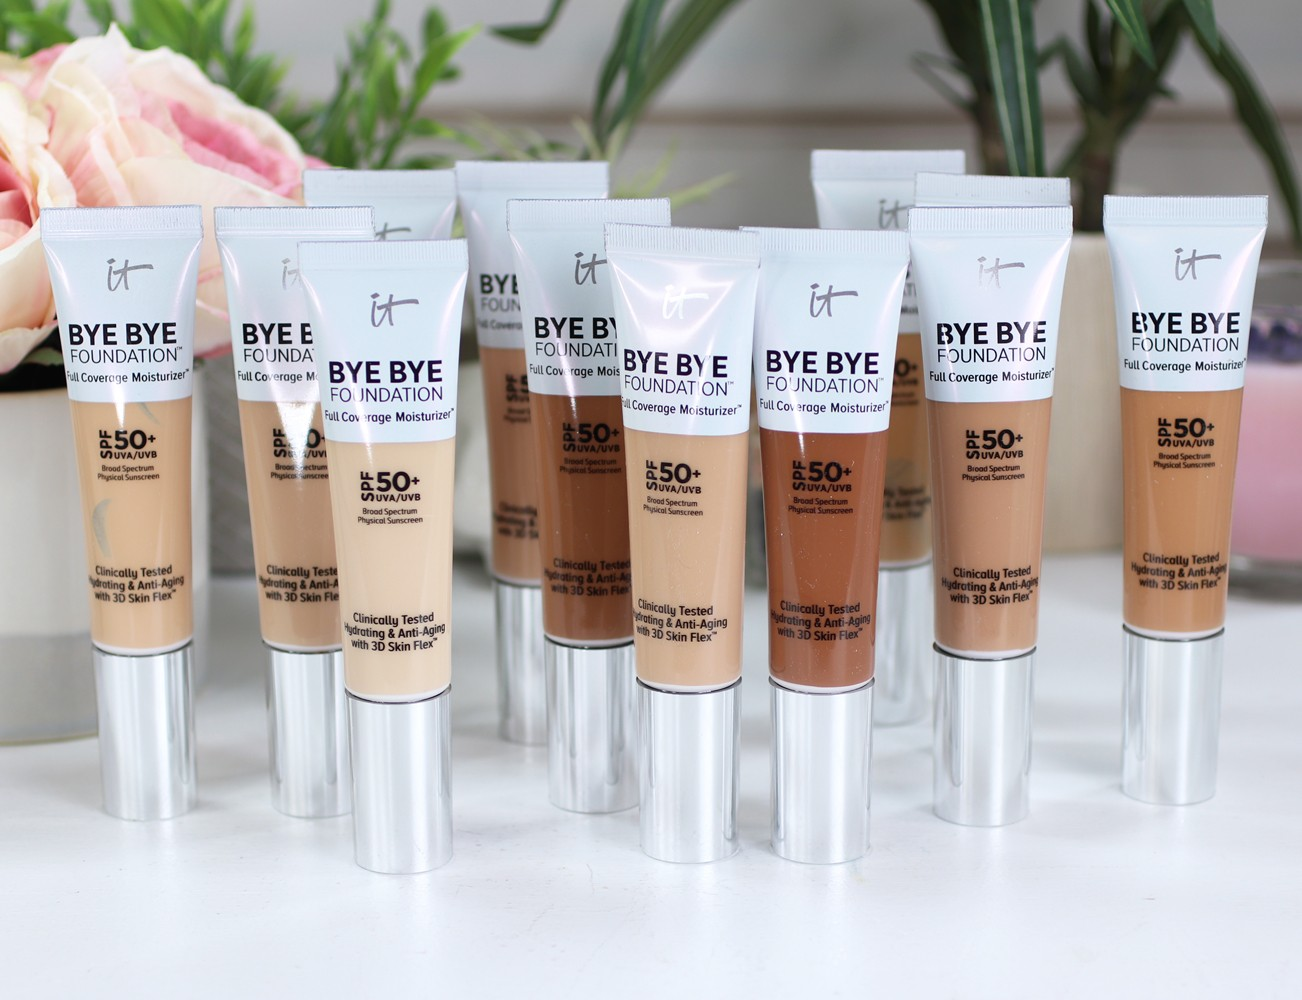 It Cosmetics Bye Bye Foundation Review and Swatches - Best Cruelty Free Sunscreen for Your Face by popular Los Angeles cruelty free beauty blogger My Beauty Bunny